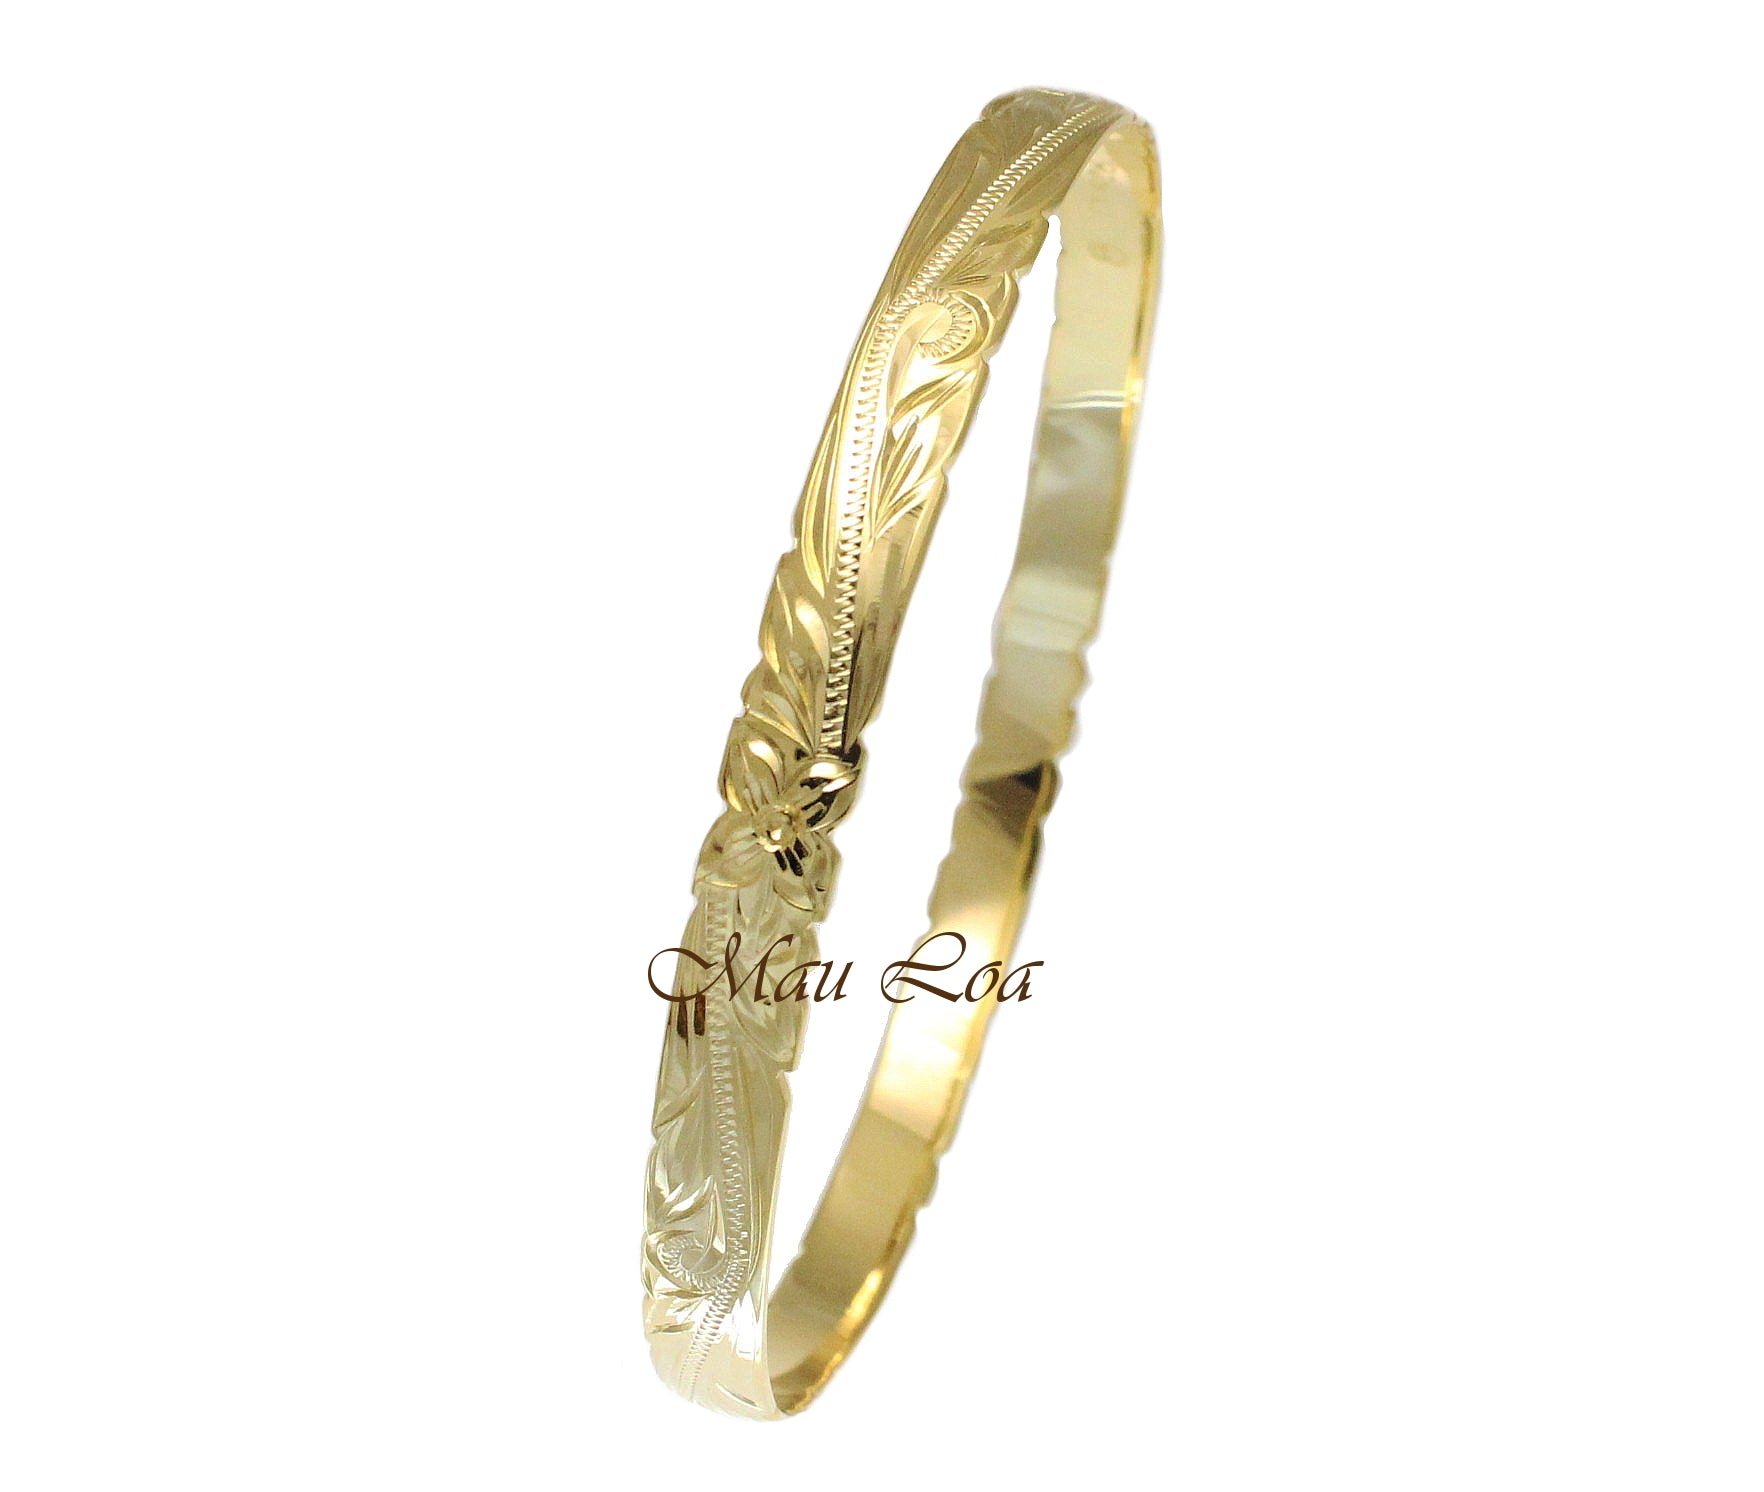 925 Sterling Silver Yellow Gold Plated Hawaiian Scroll Plumeria 6mm Cut Out Edge Bangle Size 7-9